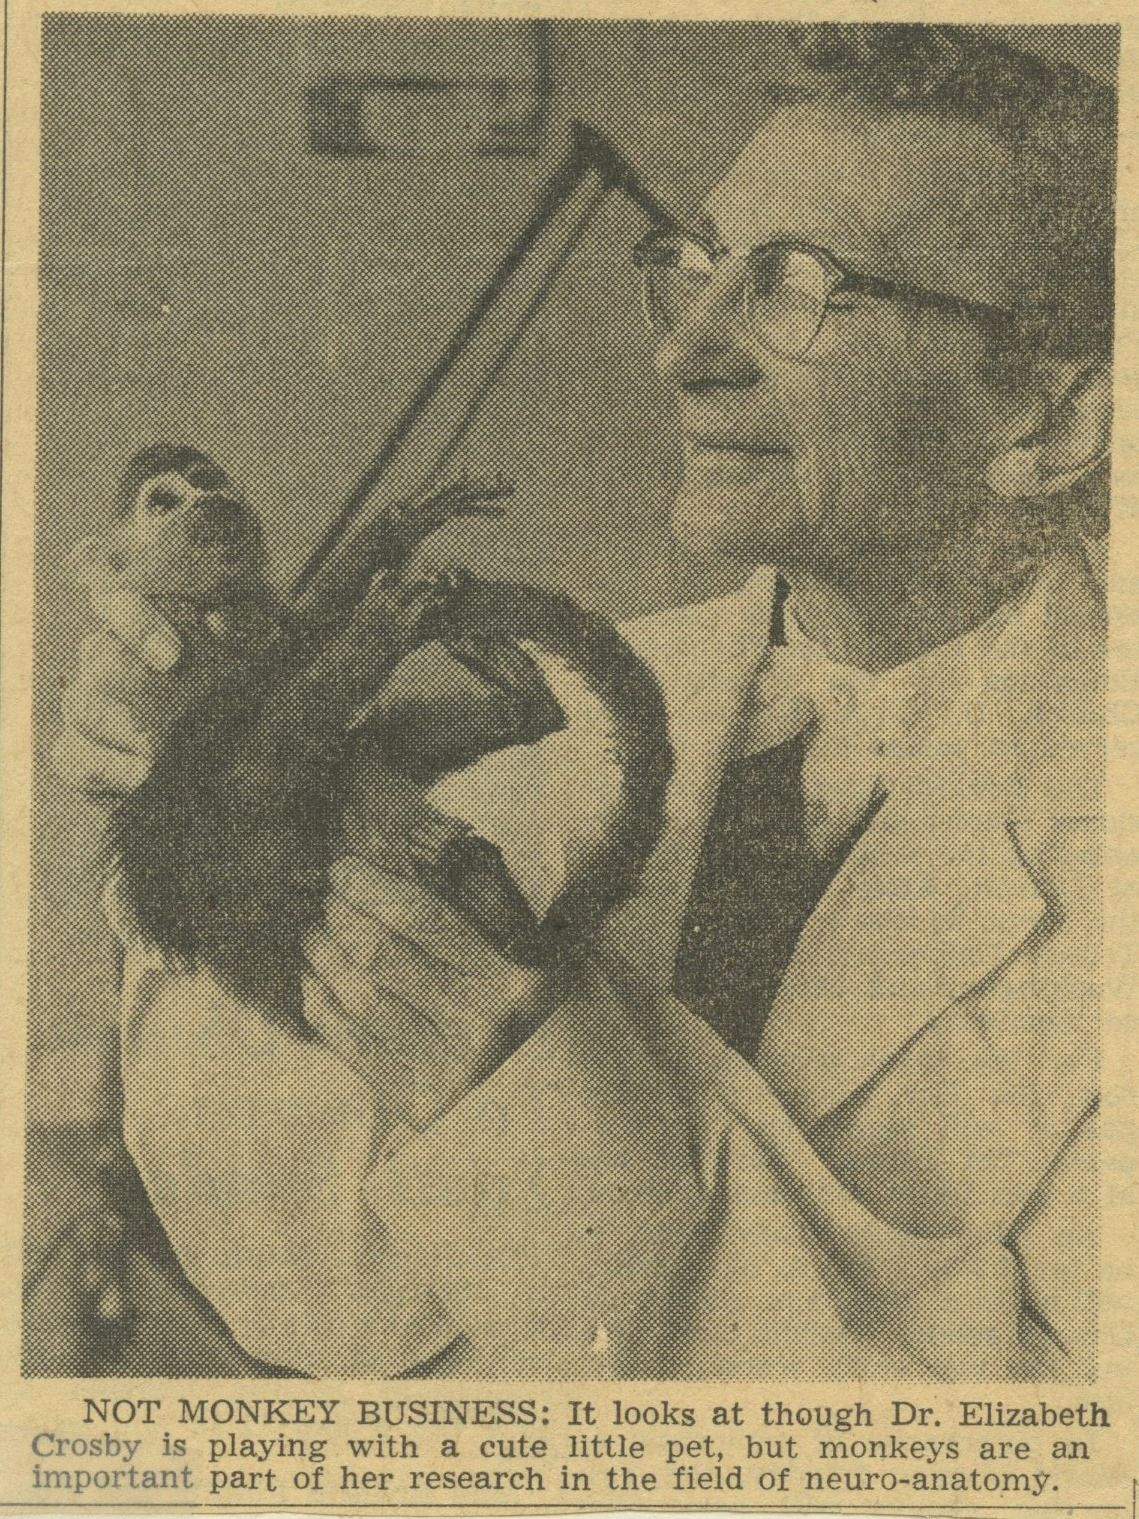 1950: Elizabeth Crosby was awarded the AAUW Achievement Award for ...